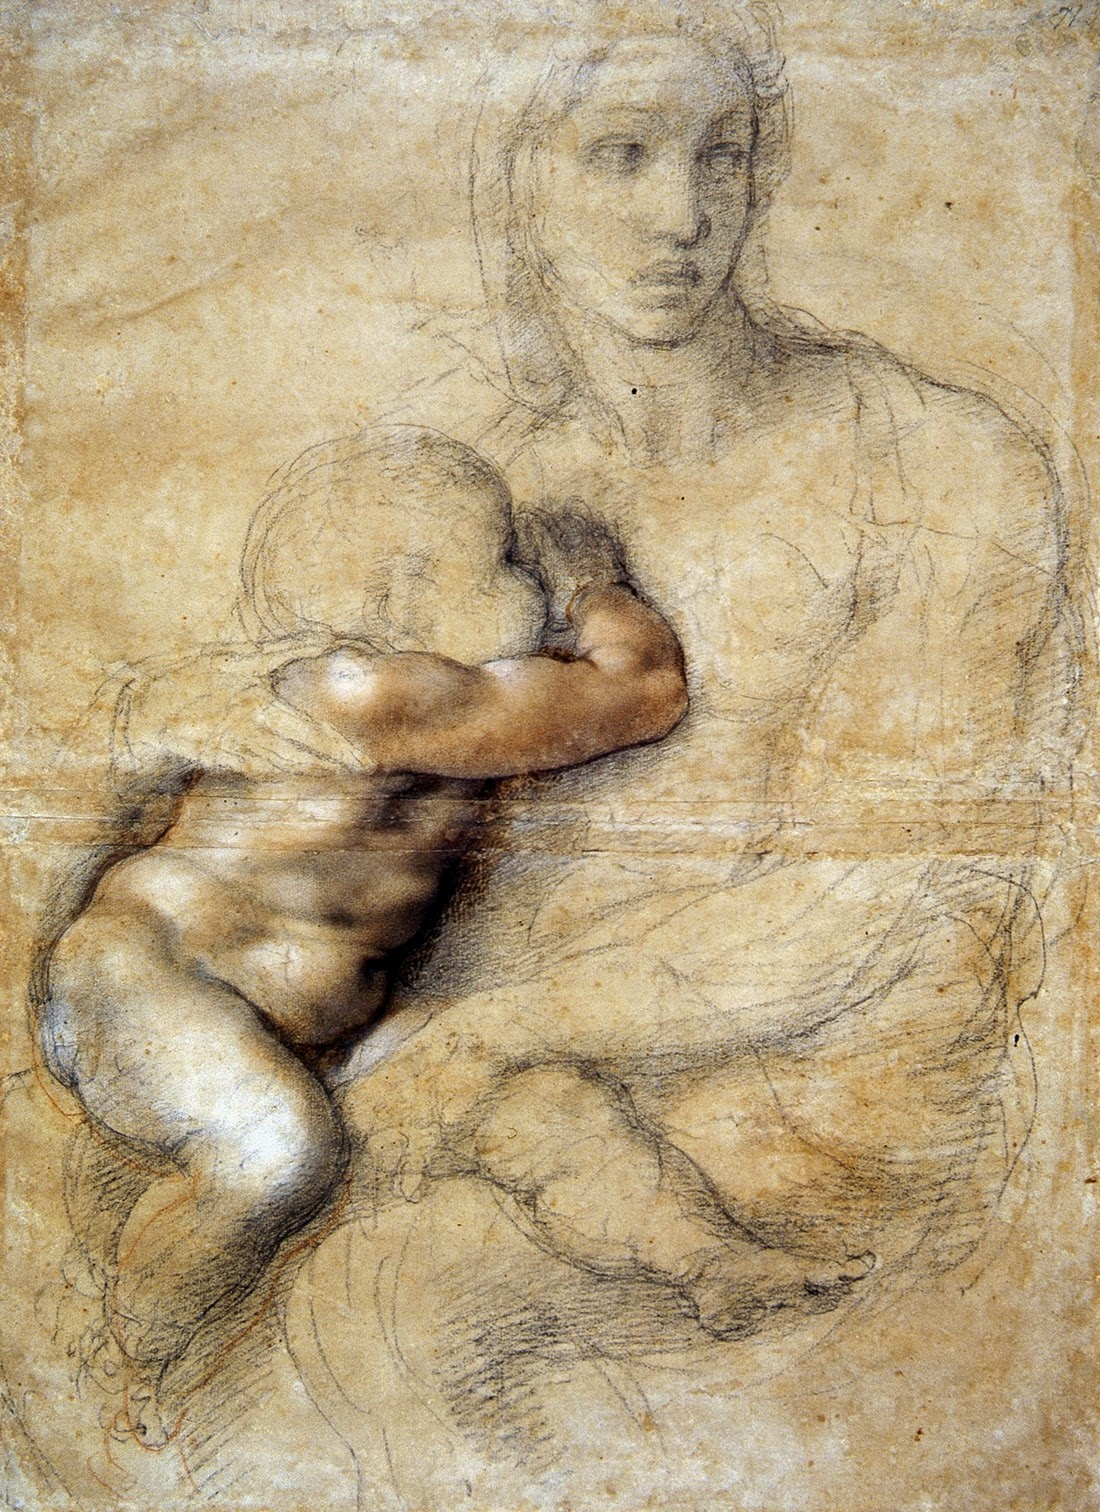 michelangelo and mannerism Michelangelo expressed the ideas of the renaissance as that of passing from harmony and composure to mannerism with ambiguity and discomfort as order has.